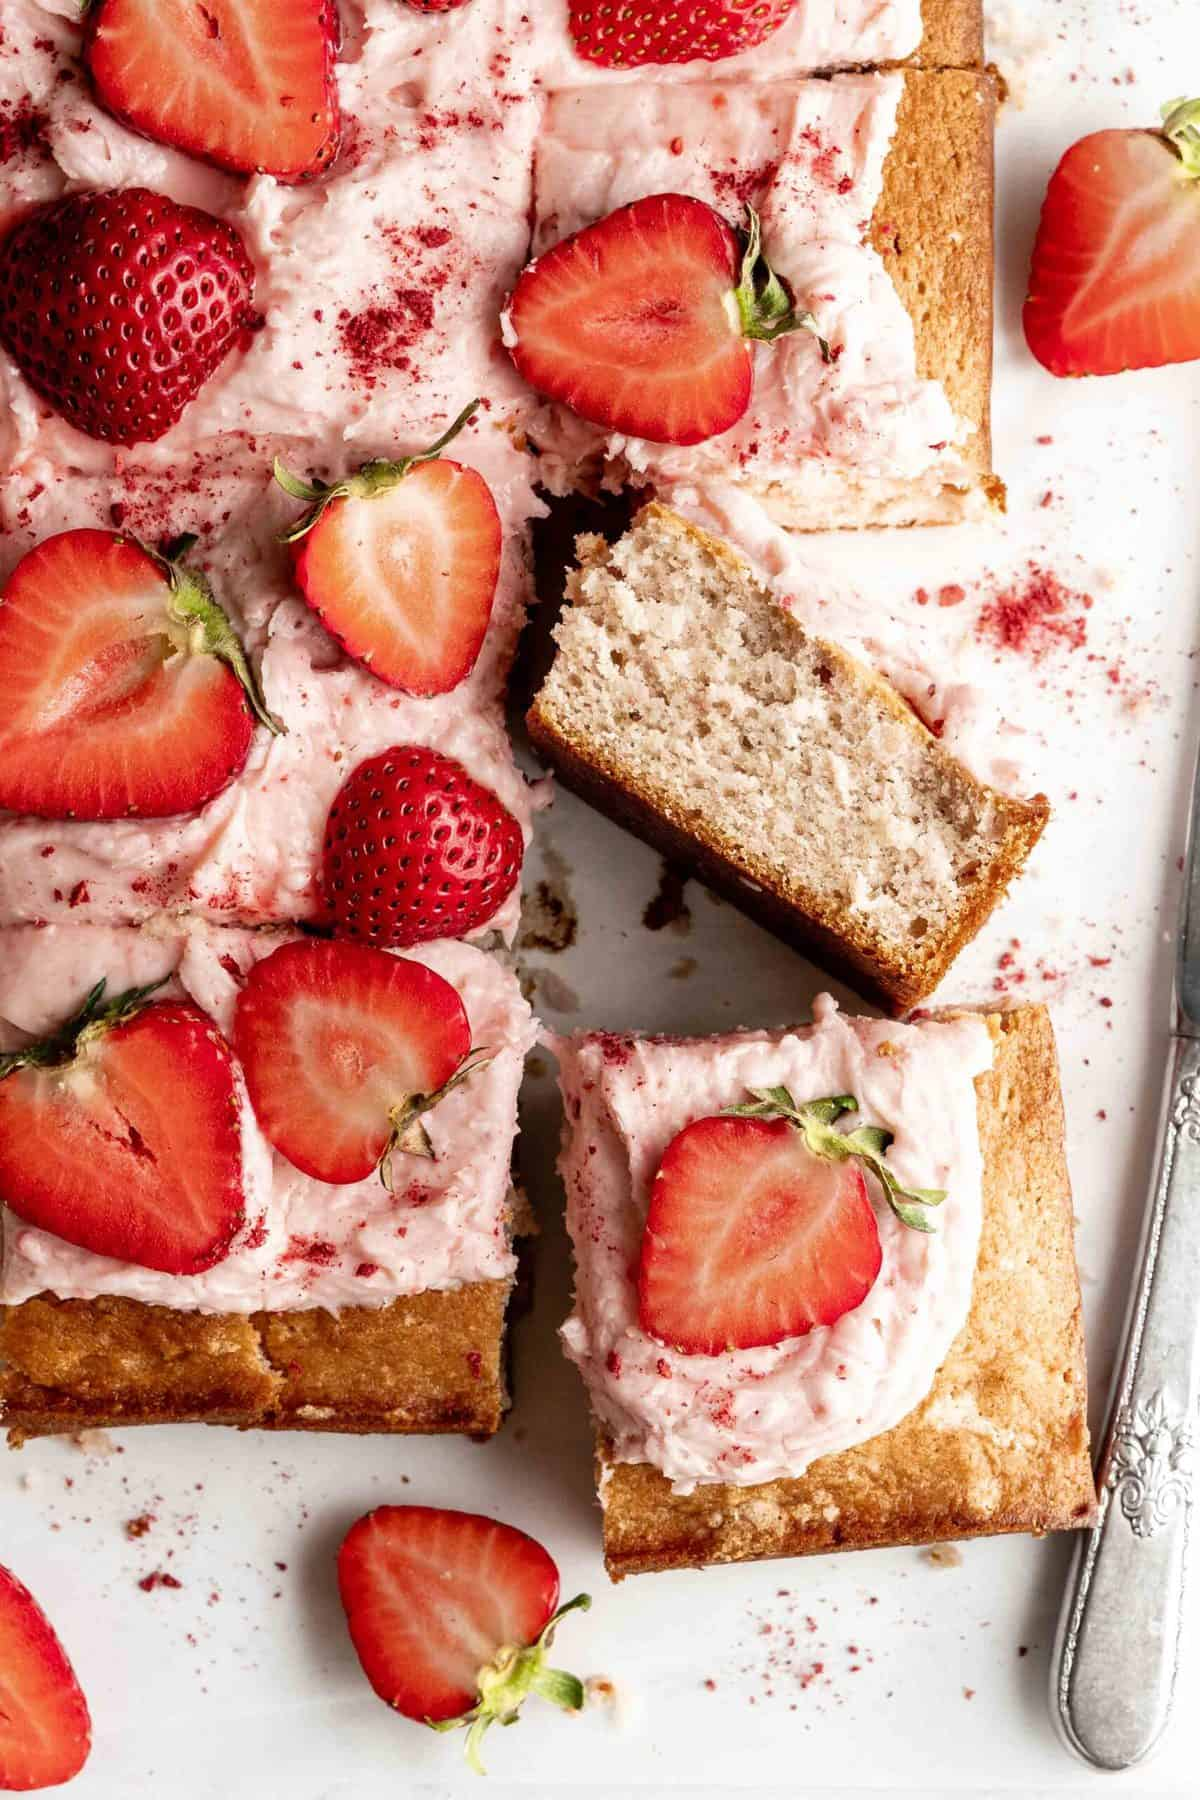 Slice of strawberry sheet cake with strawberry cream cheese frosting topped with sliced strawberries.